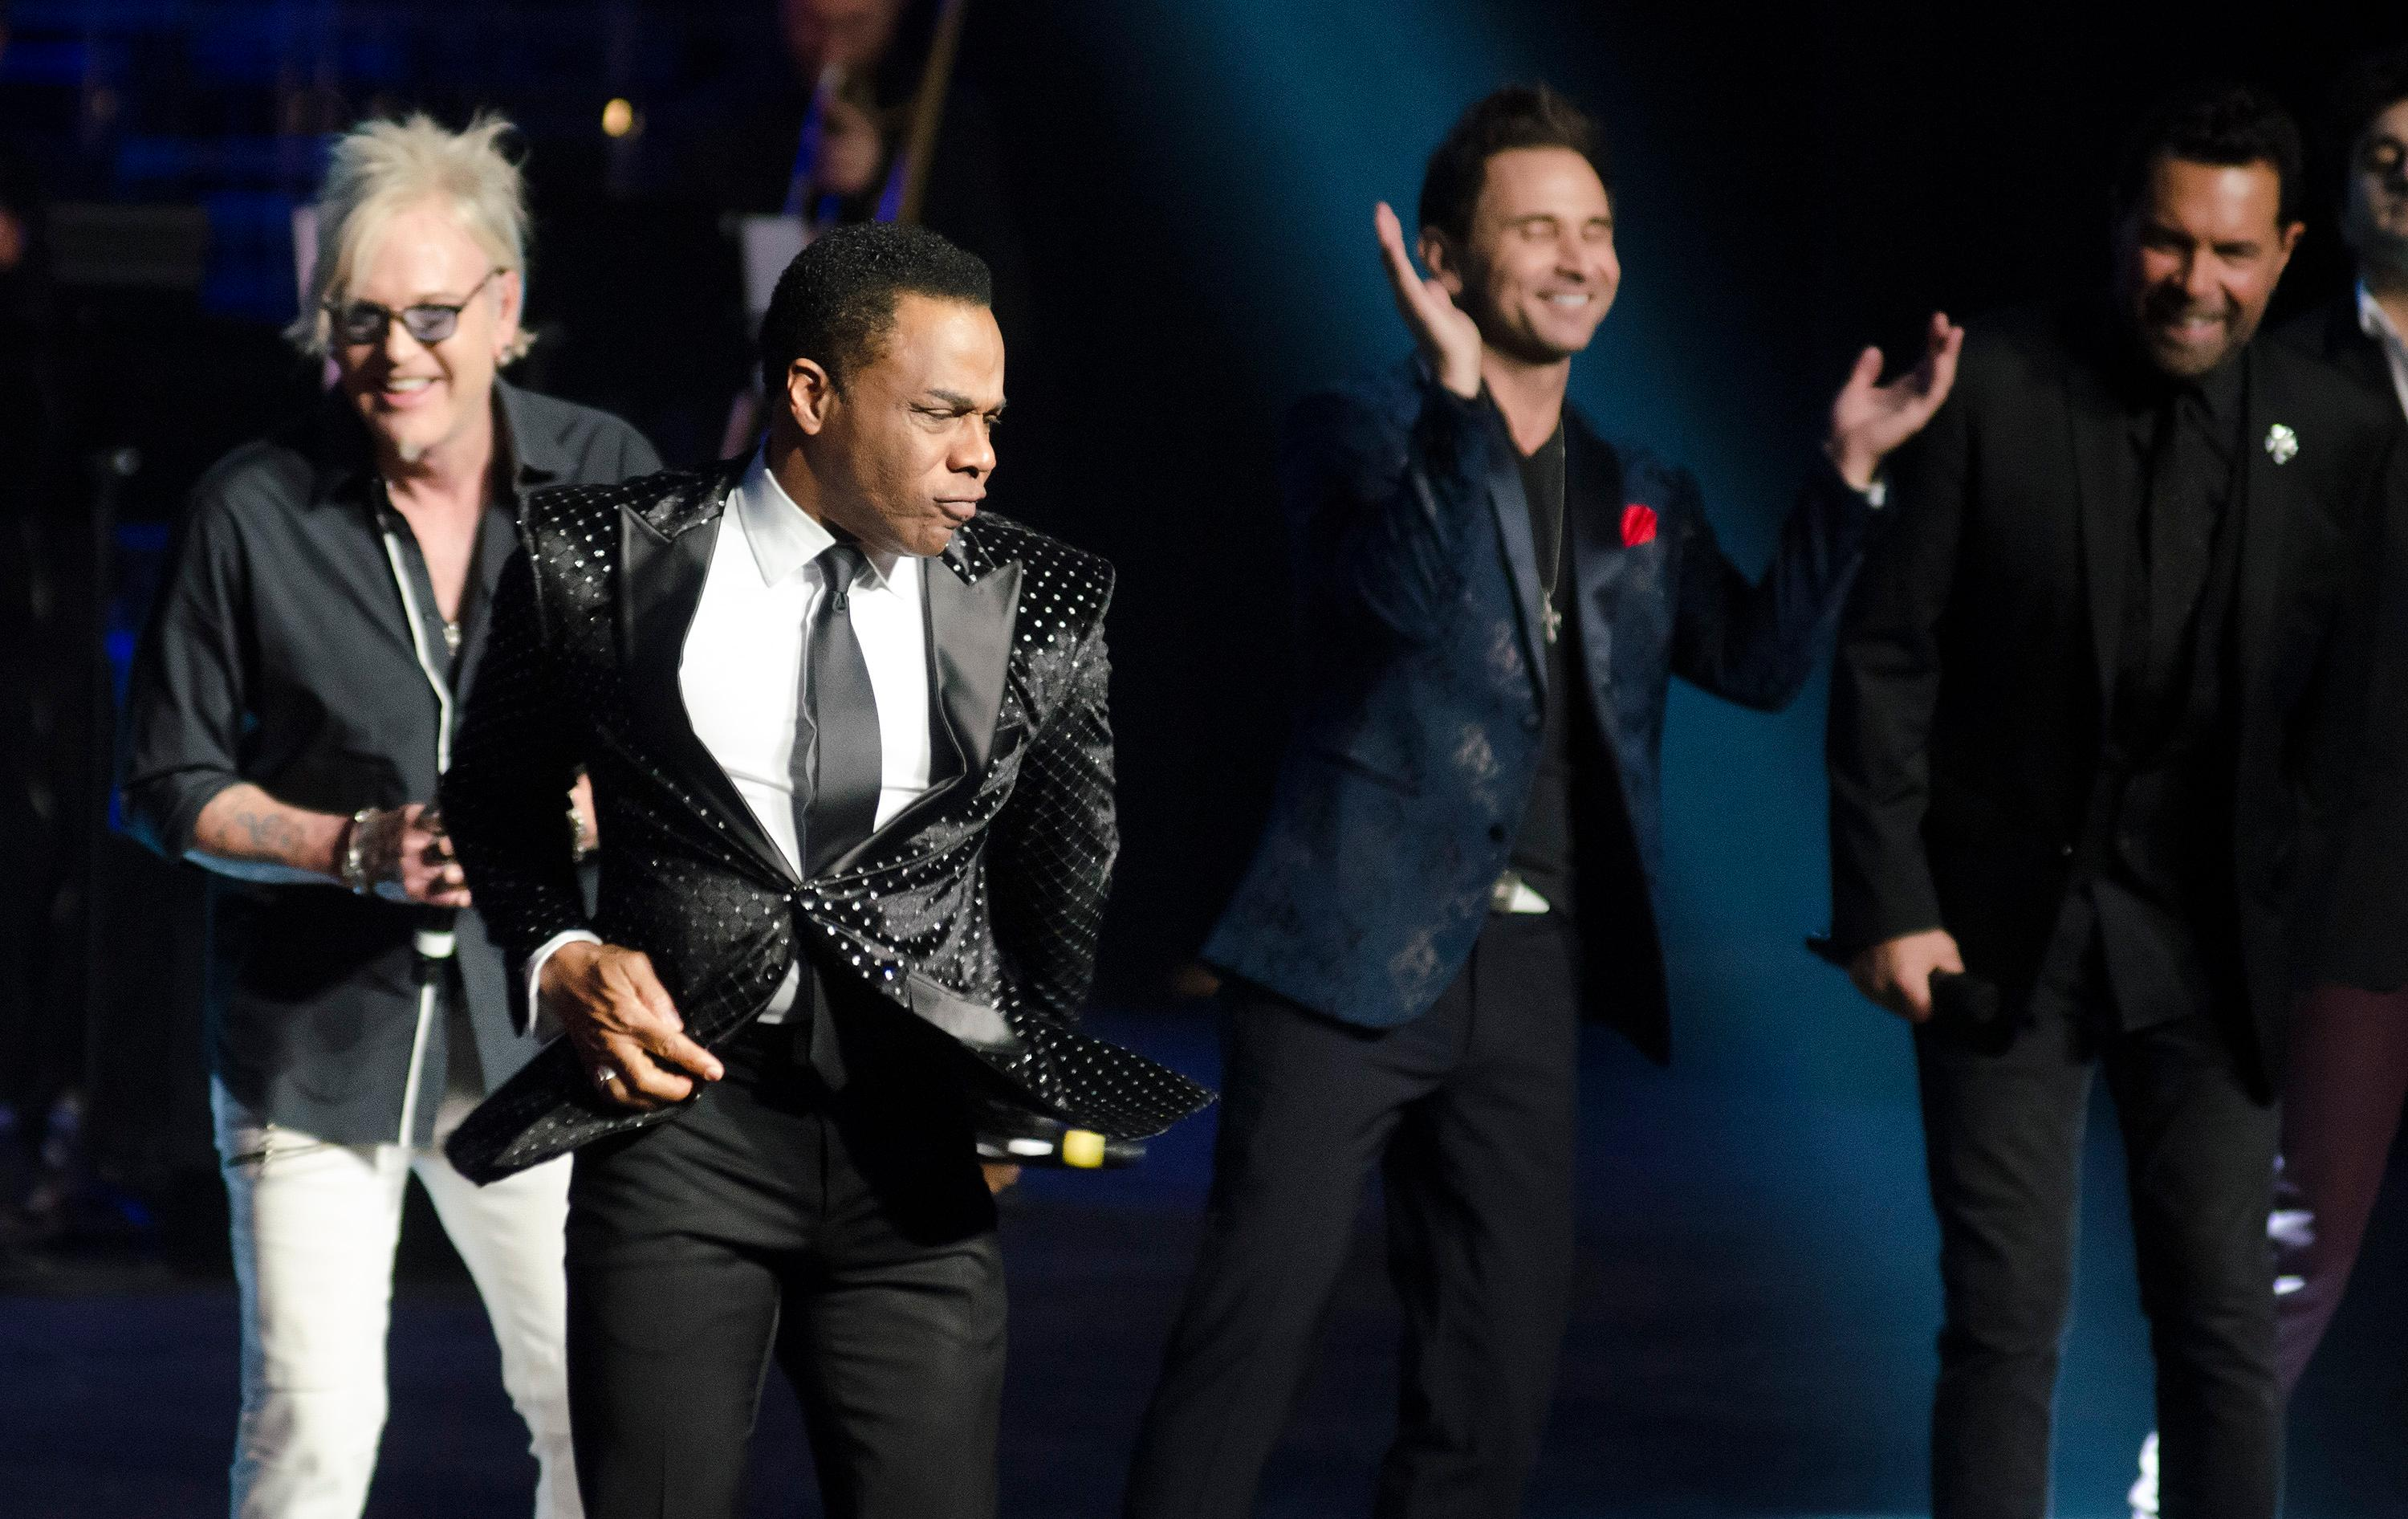 "Earl Turner, second from left, performs with fellow entertainers during the ""Vegas Cares"" benefit concert at the Venetian Theatre in the Venetian hotel-casino at 3355 S. Las Vegas Blvd in Las Vegas on Sunday, Nov 5, 2017. The concert was sponsored by a group of Las Vegas entertainers, producers and business professionals to honor the victims and first responders from the 1 October shooting tragedy. CREDIT: Bill Hughes/Las Vegas News Bureau"